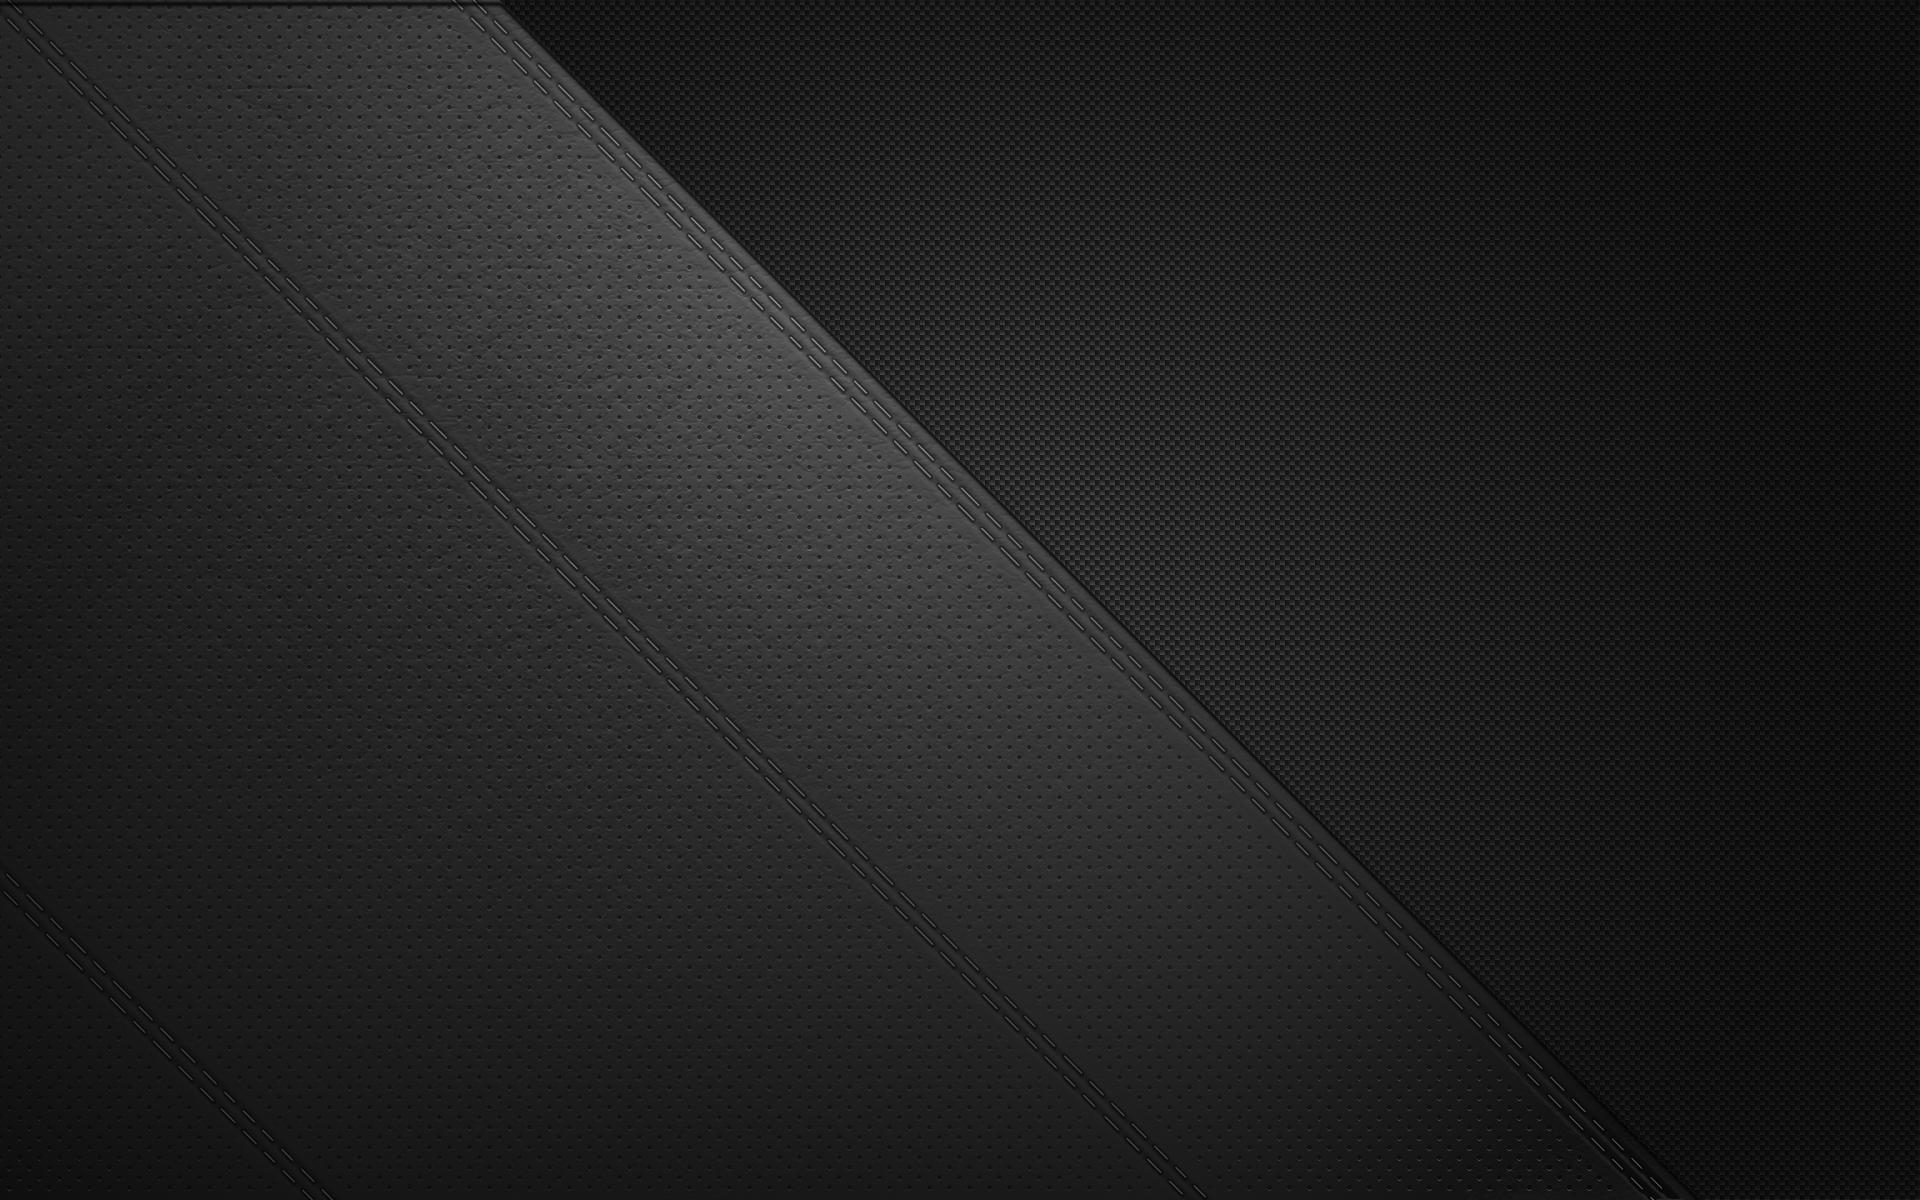 Simple Abstract Black Wallpaper